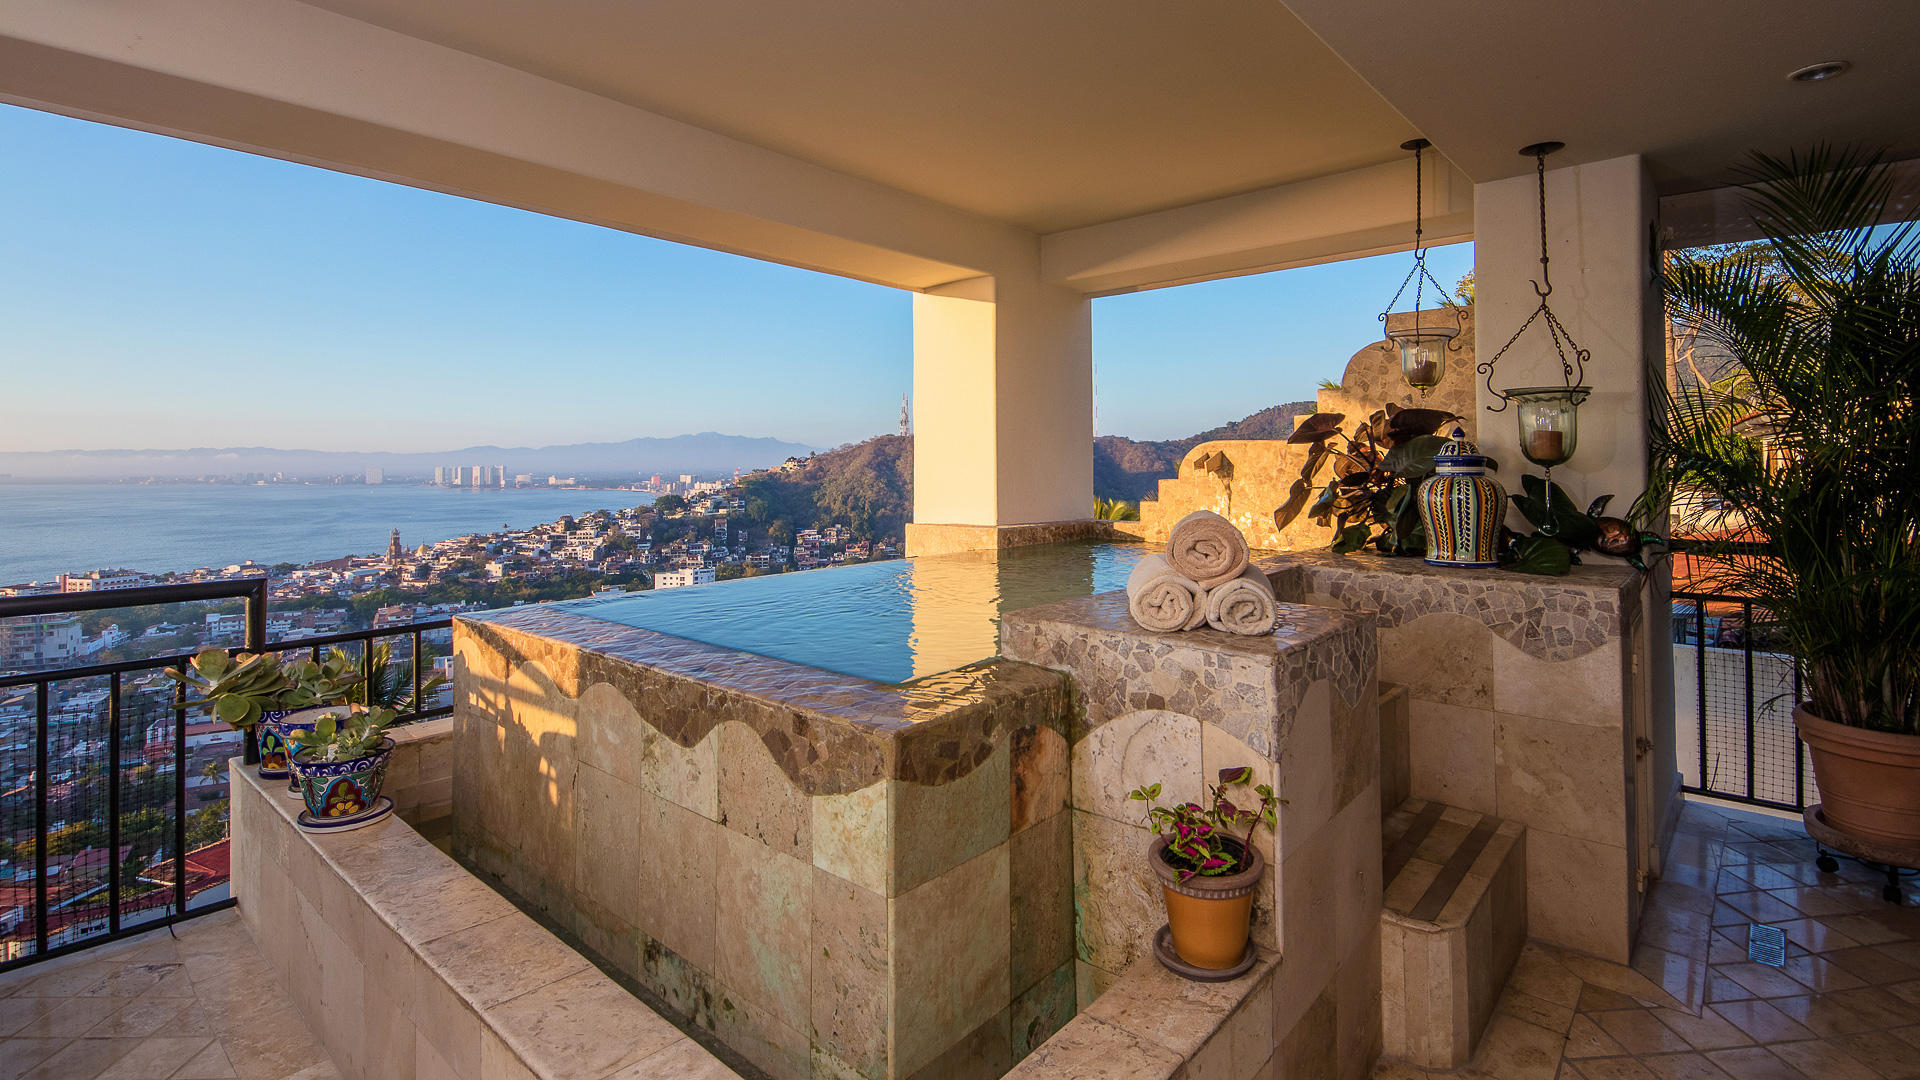 PVRPV -Private pool with view